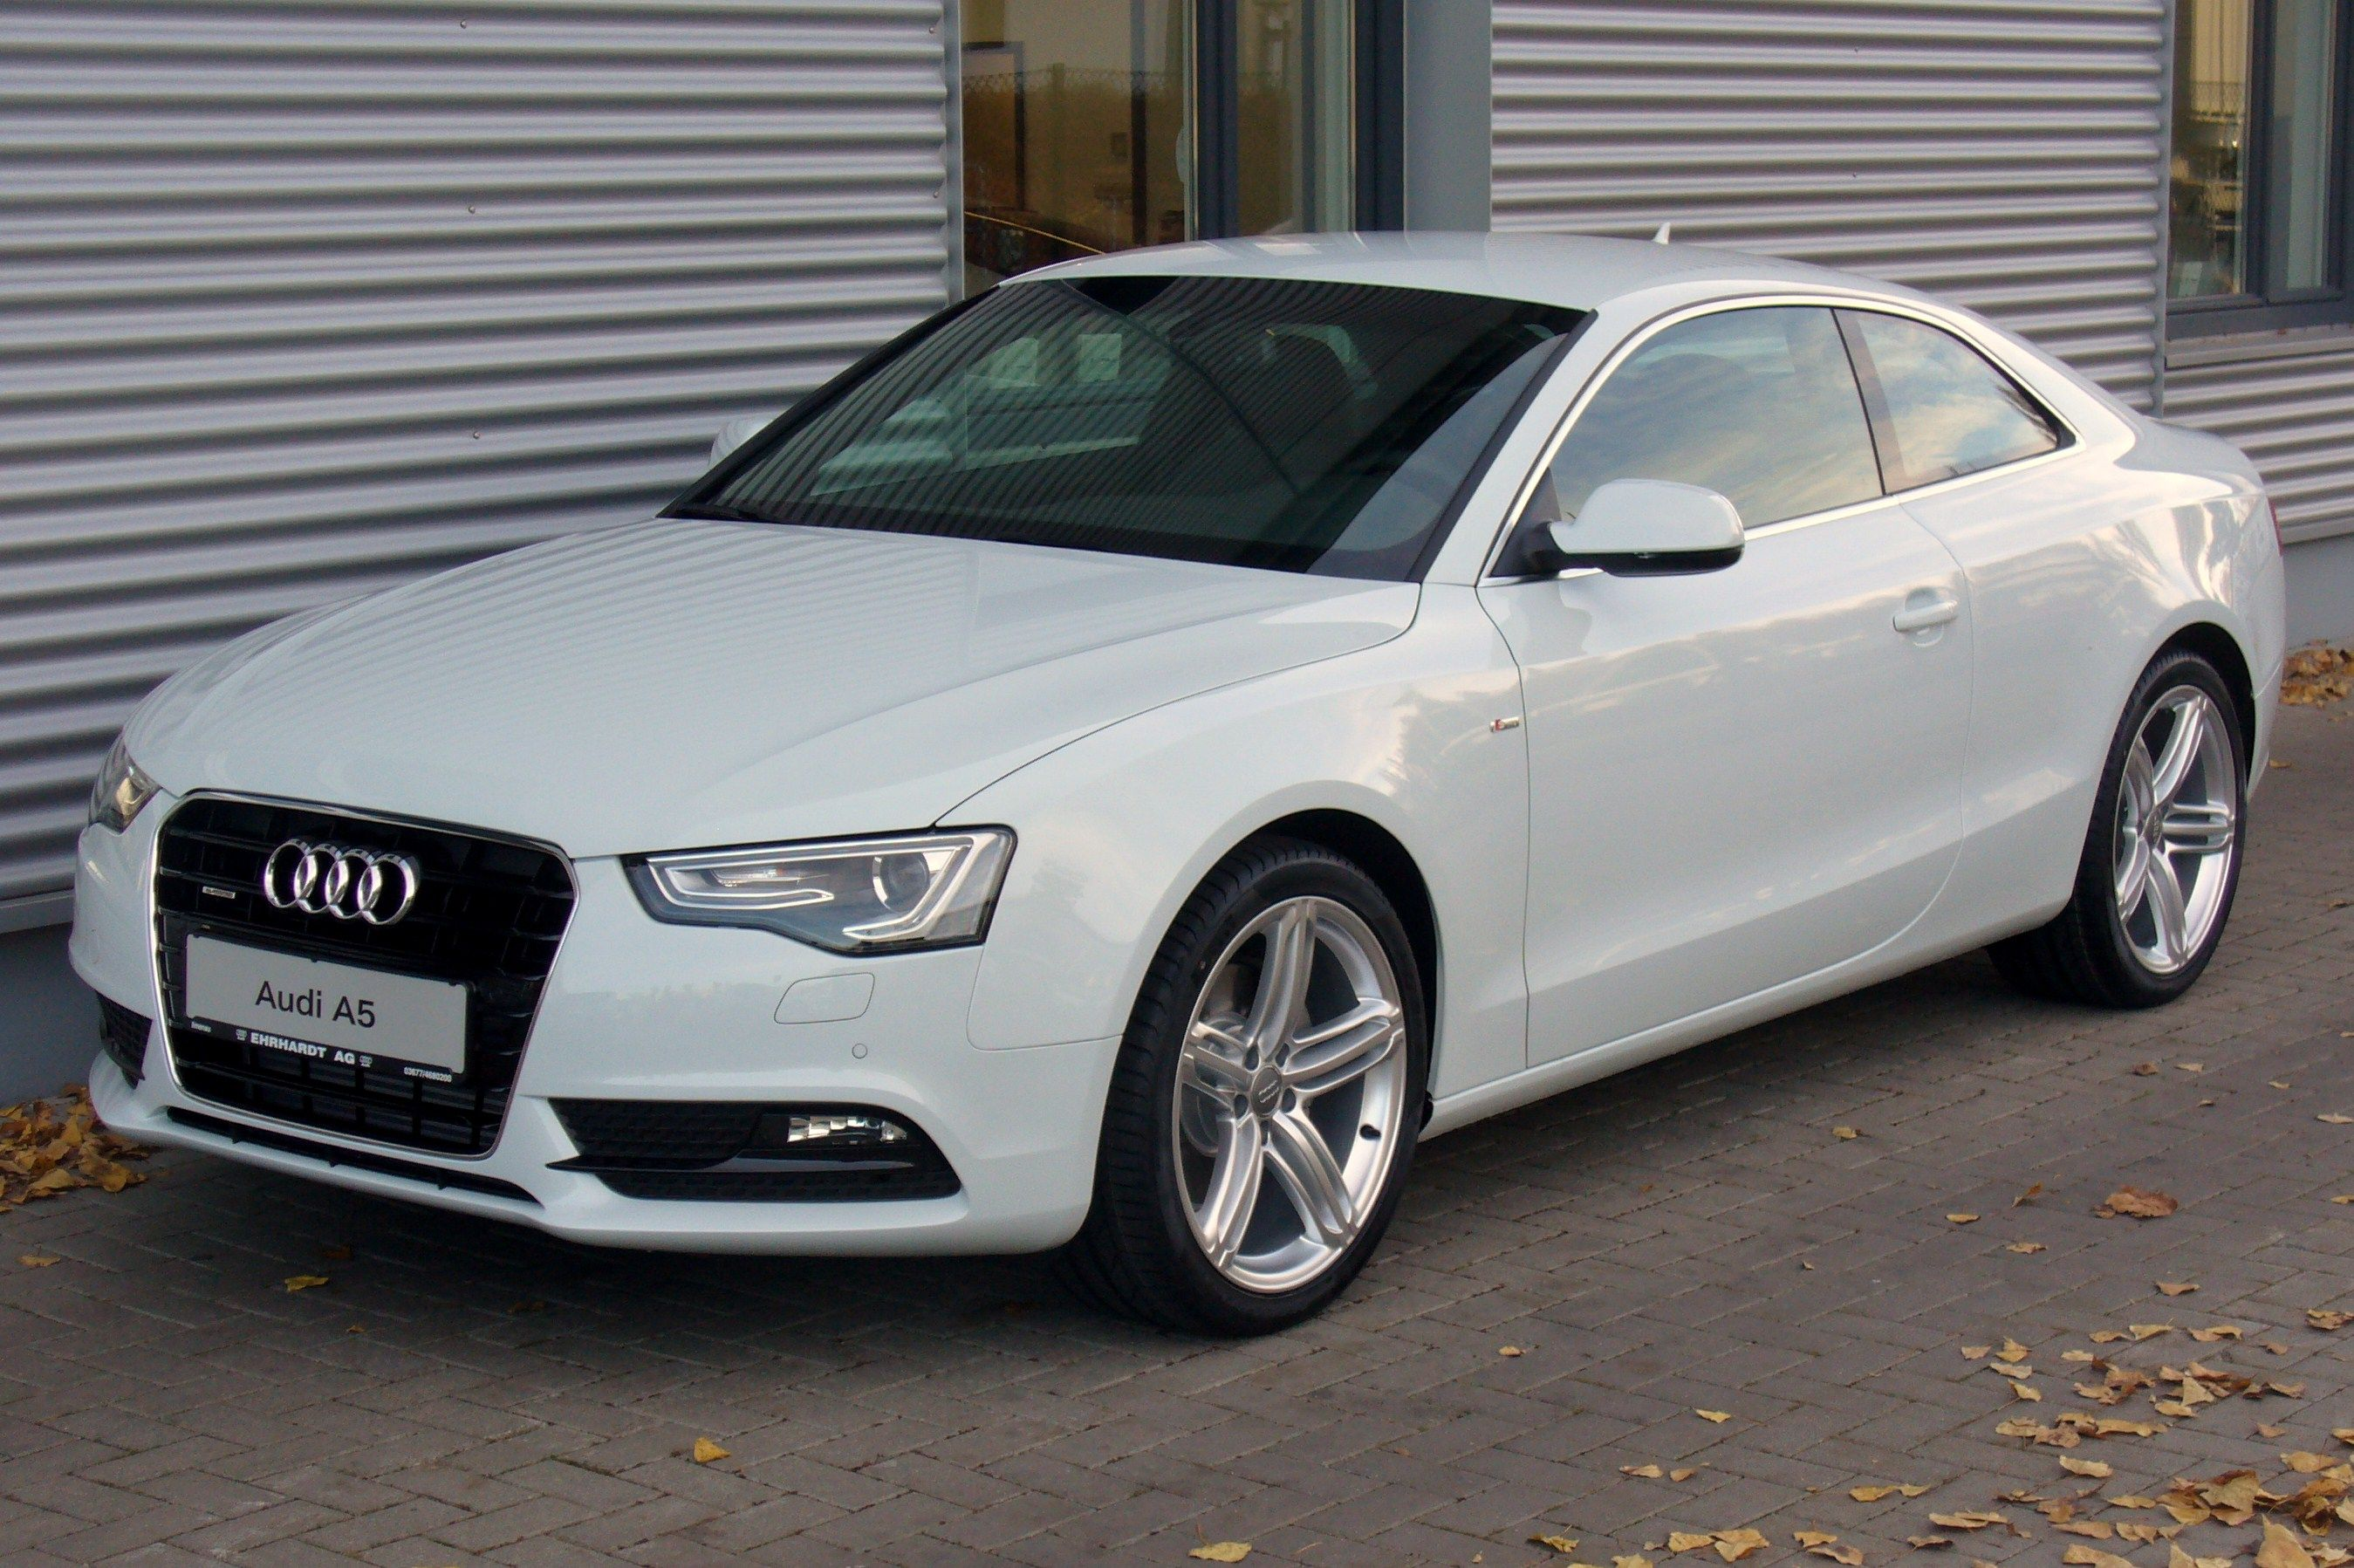 Get a chance to win a free audi a5 with every flight booked at etihad